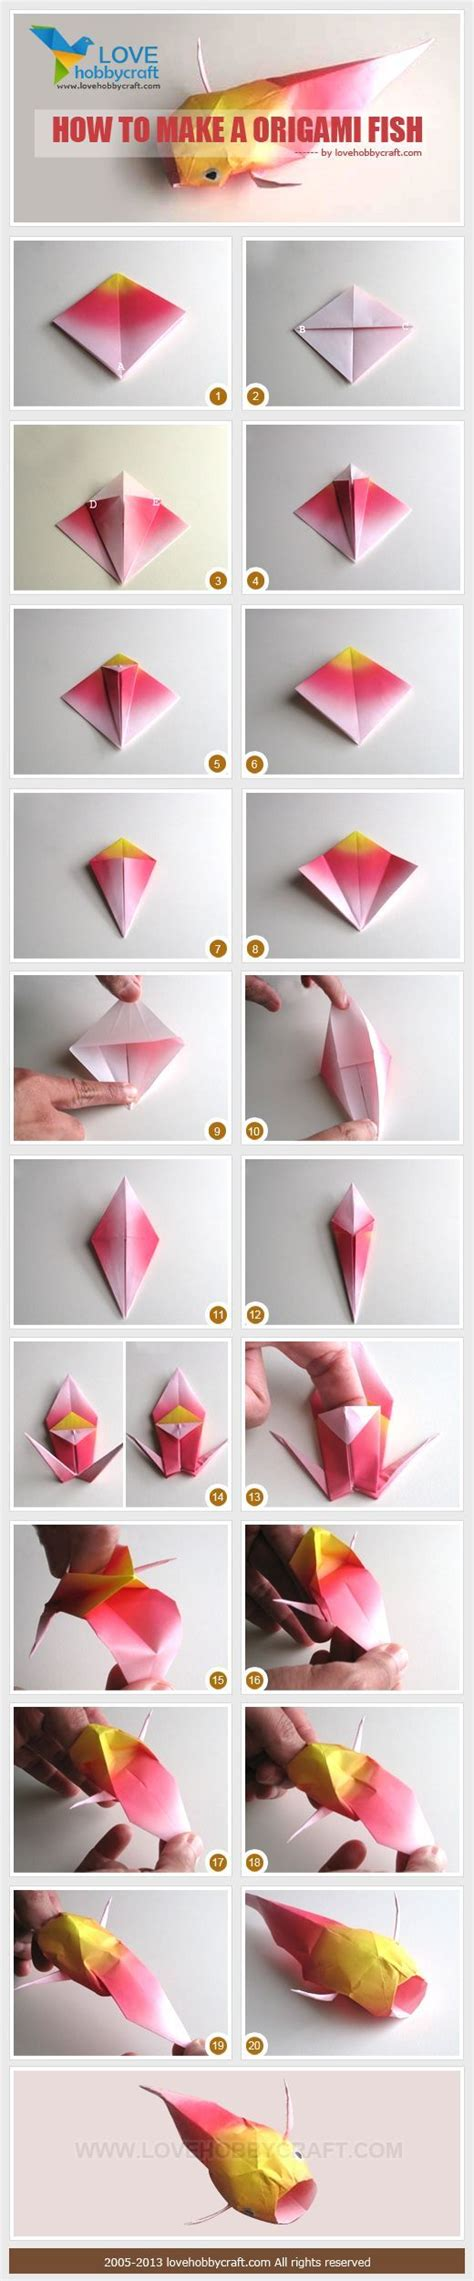 How Make Origami Fish From Paper Diy Arts Crafts